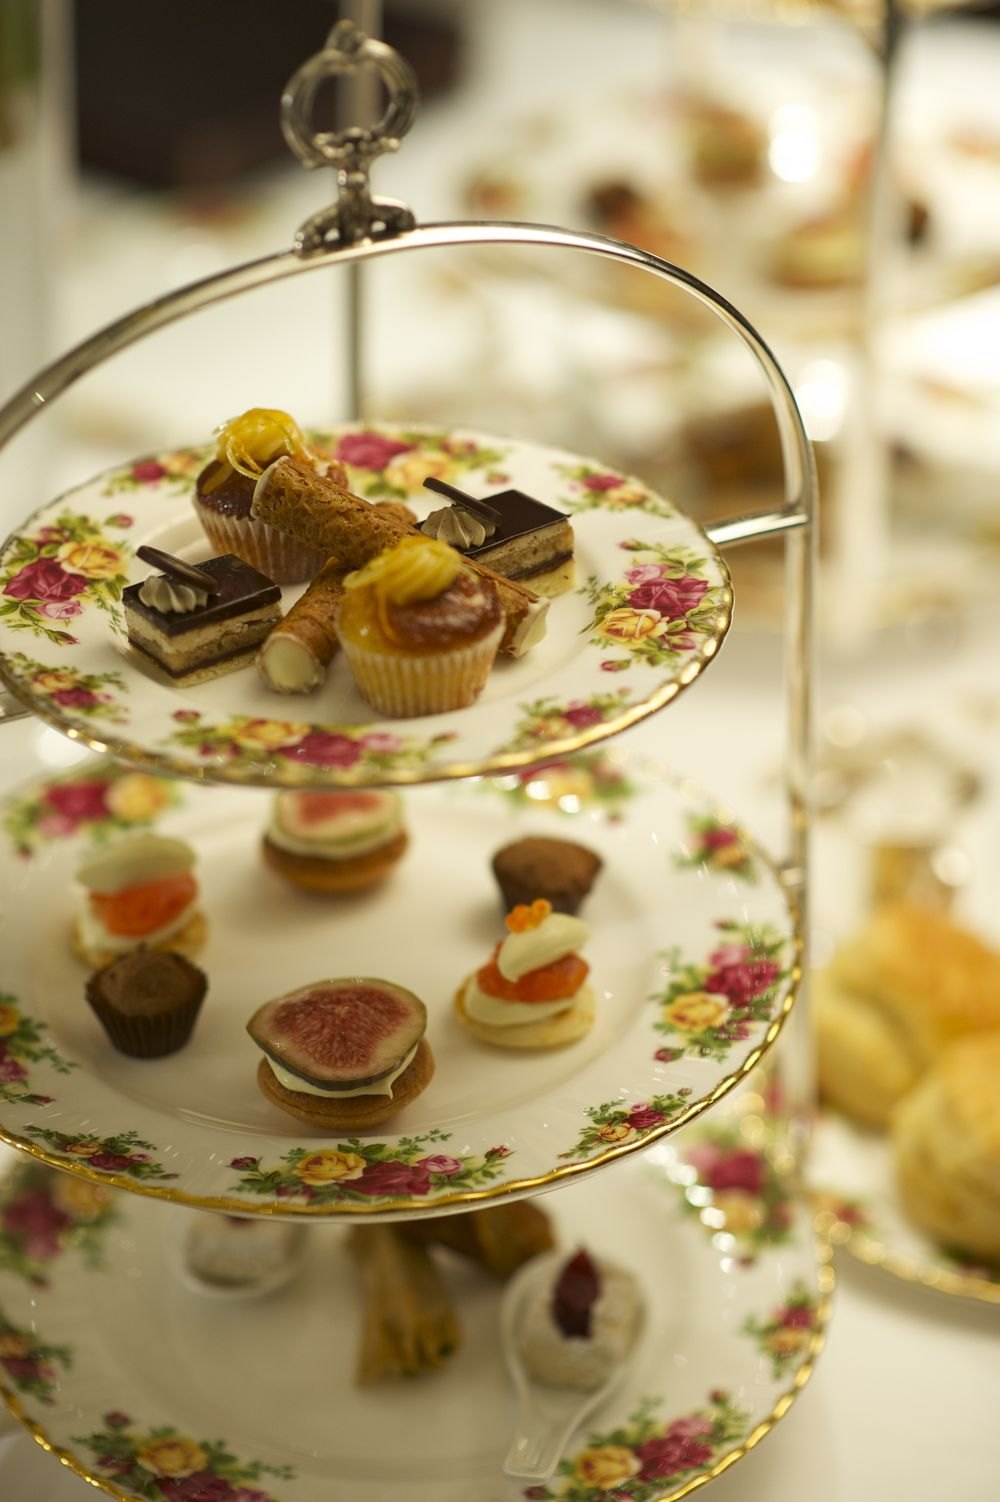 Win 1 of 10 Double Passes To Dilmah's Charitea High Tea Event!